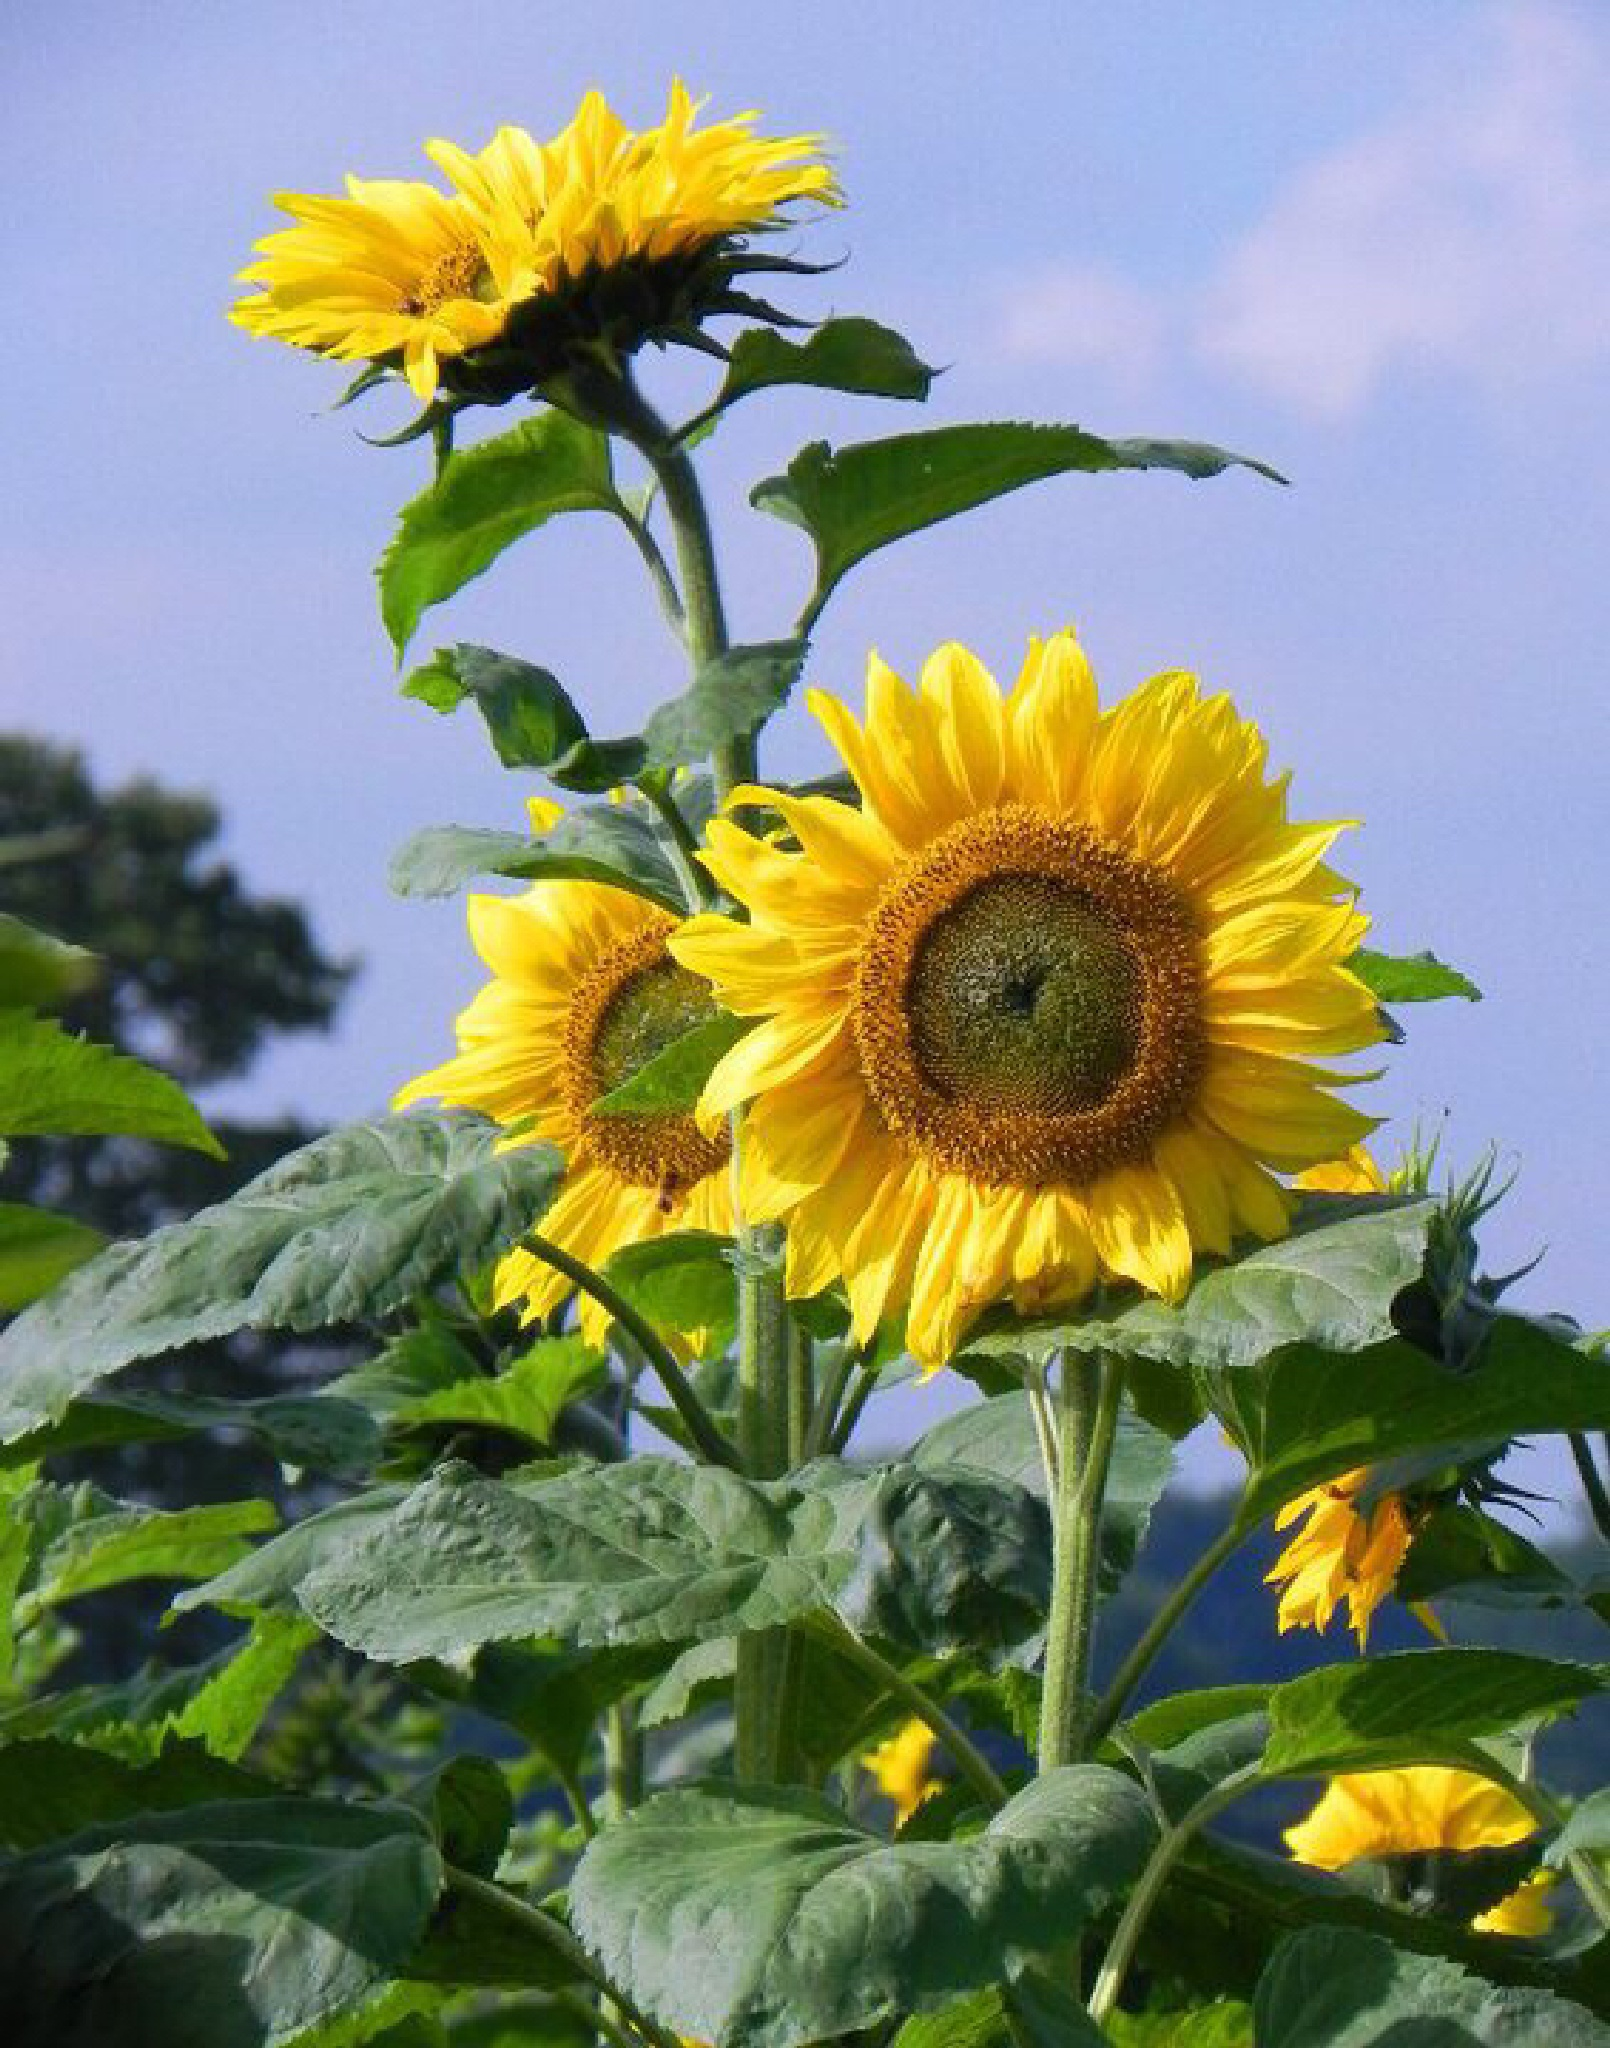 Sunflowers by Peter Stowell